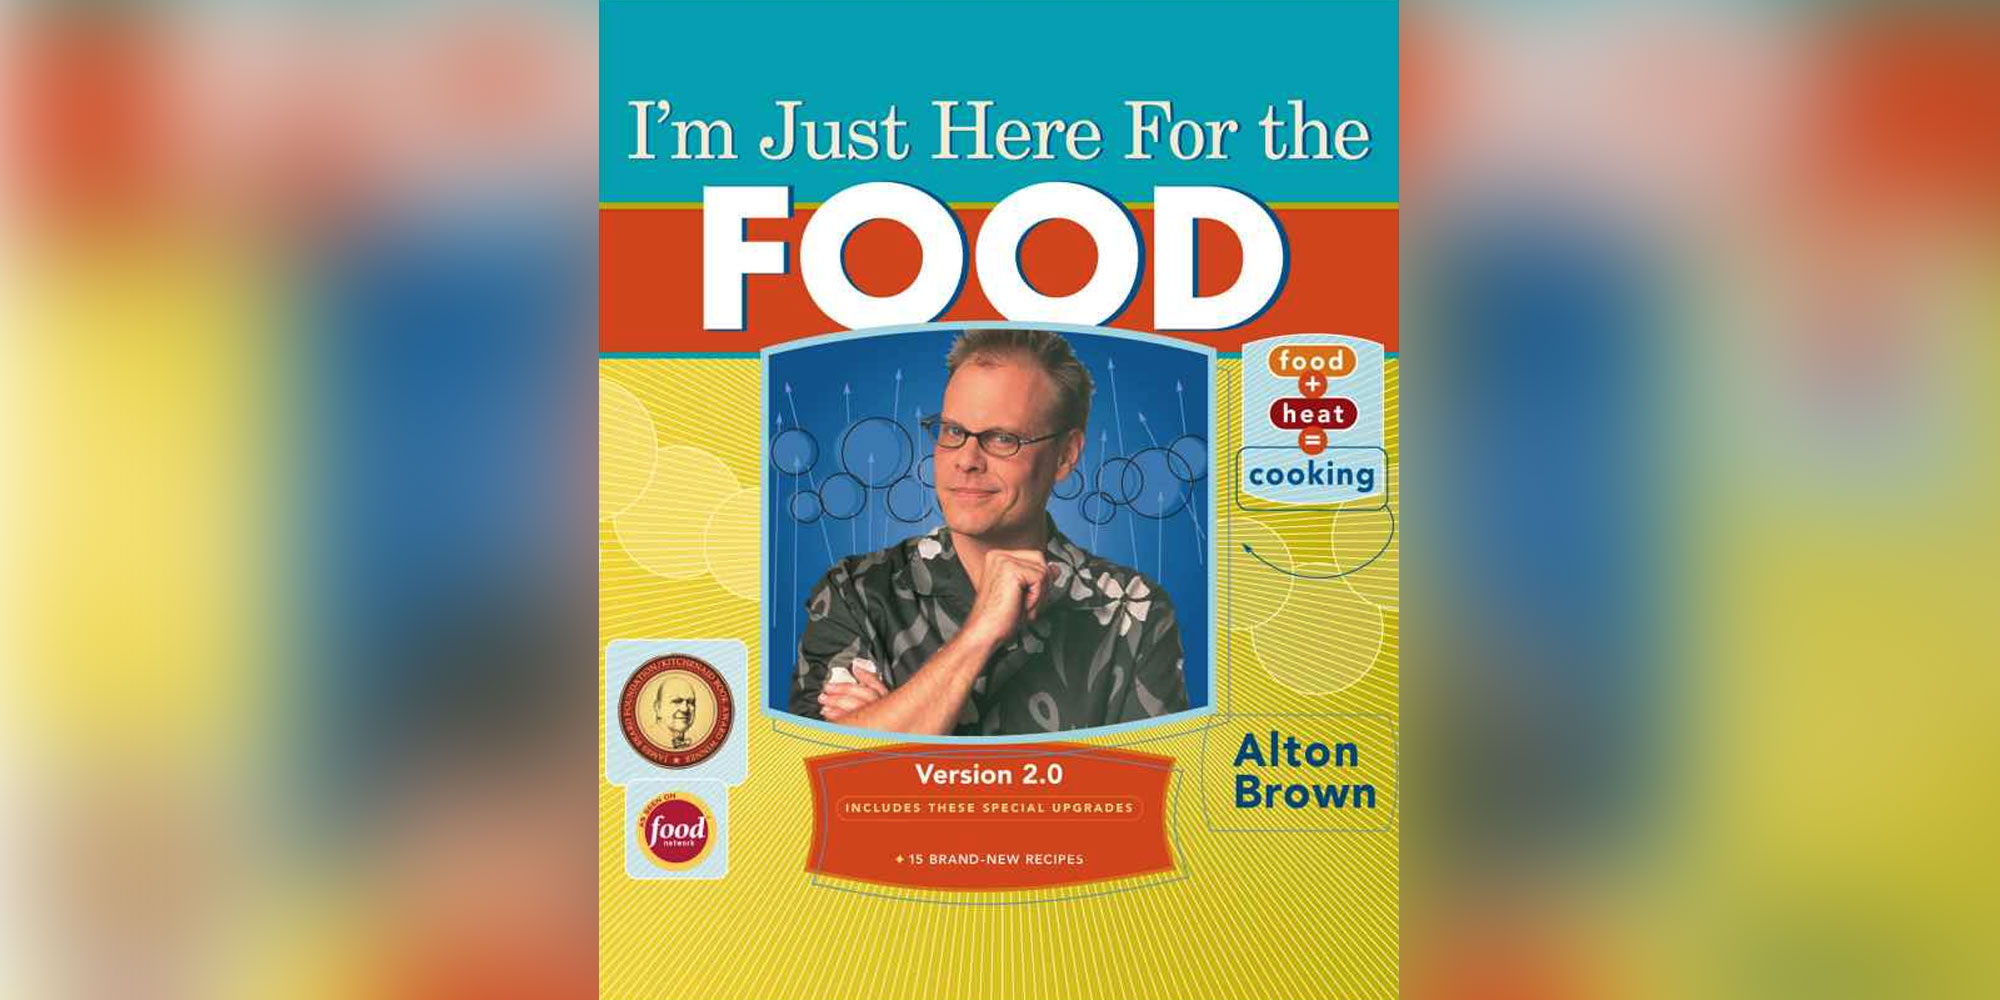 I'm Just Here for the Food V2 by Alton Brown drops to $3 on Kindle